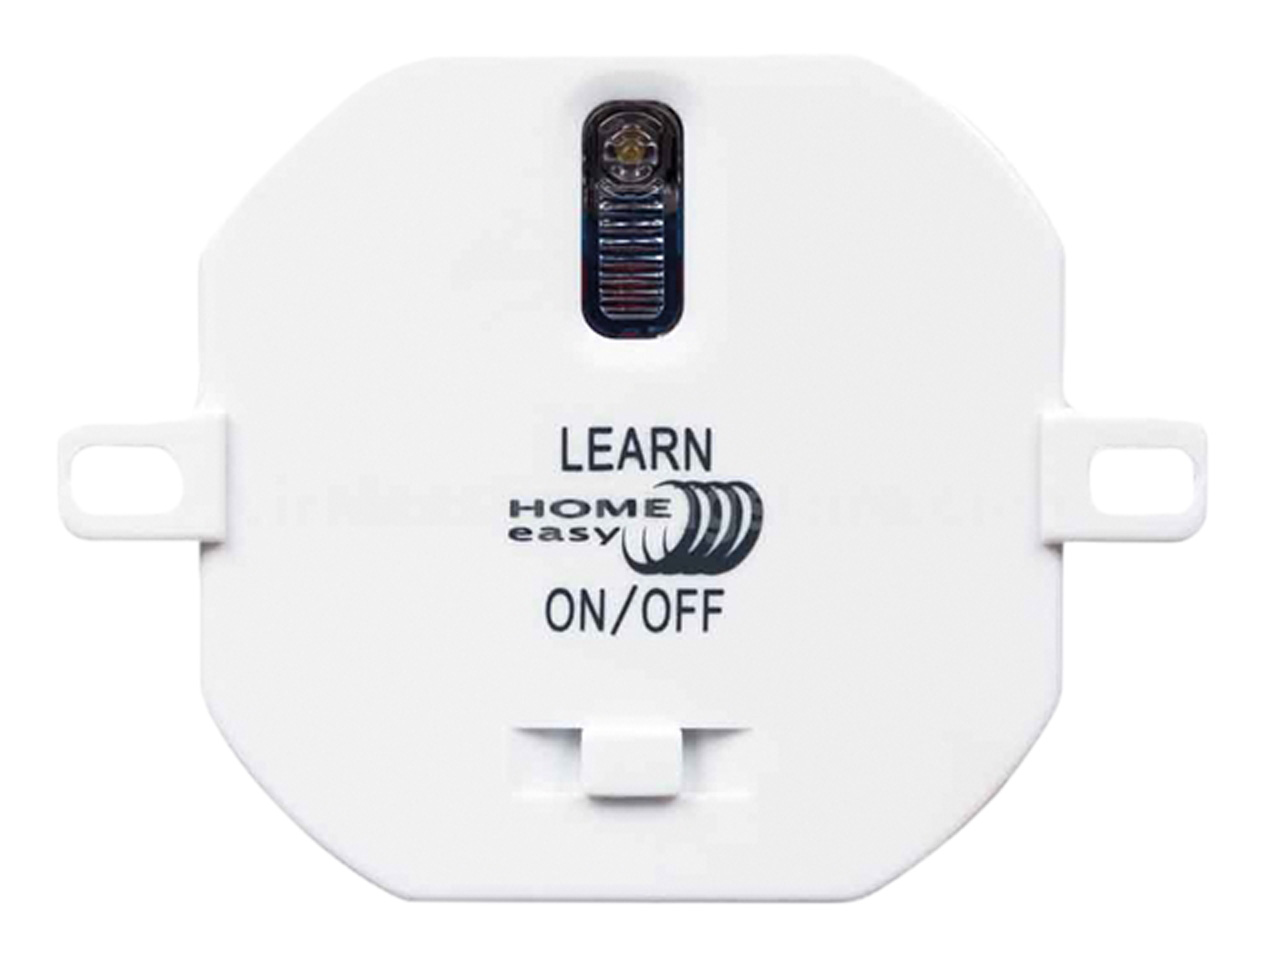 Byron HE304 Home Easy Remote Control Ceiling Switch